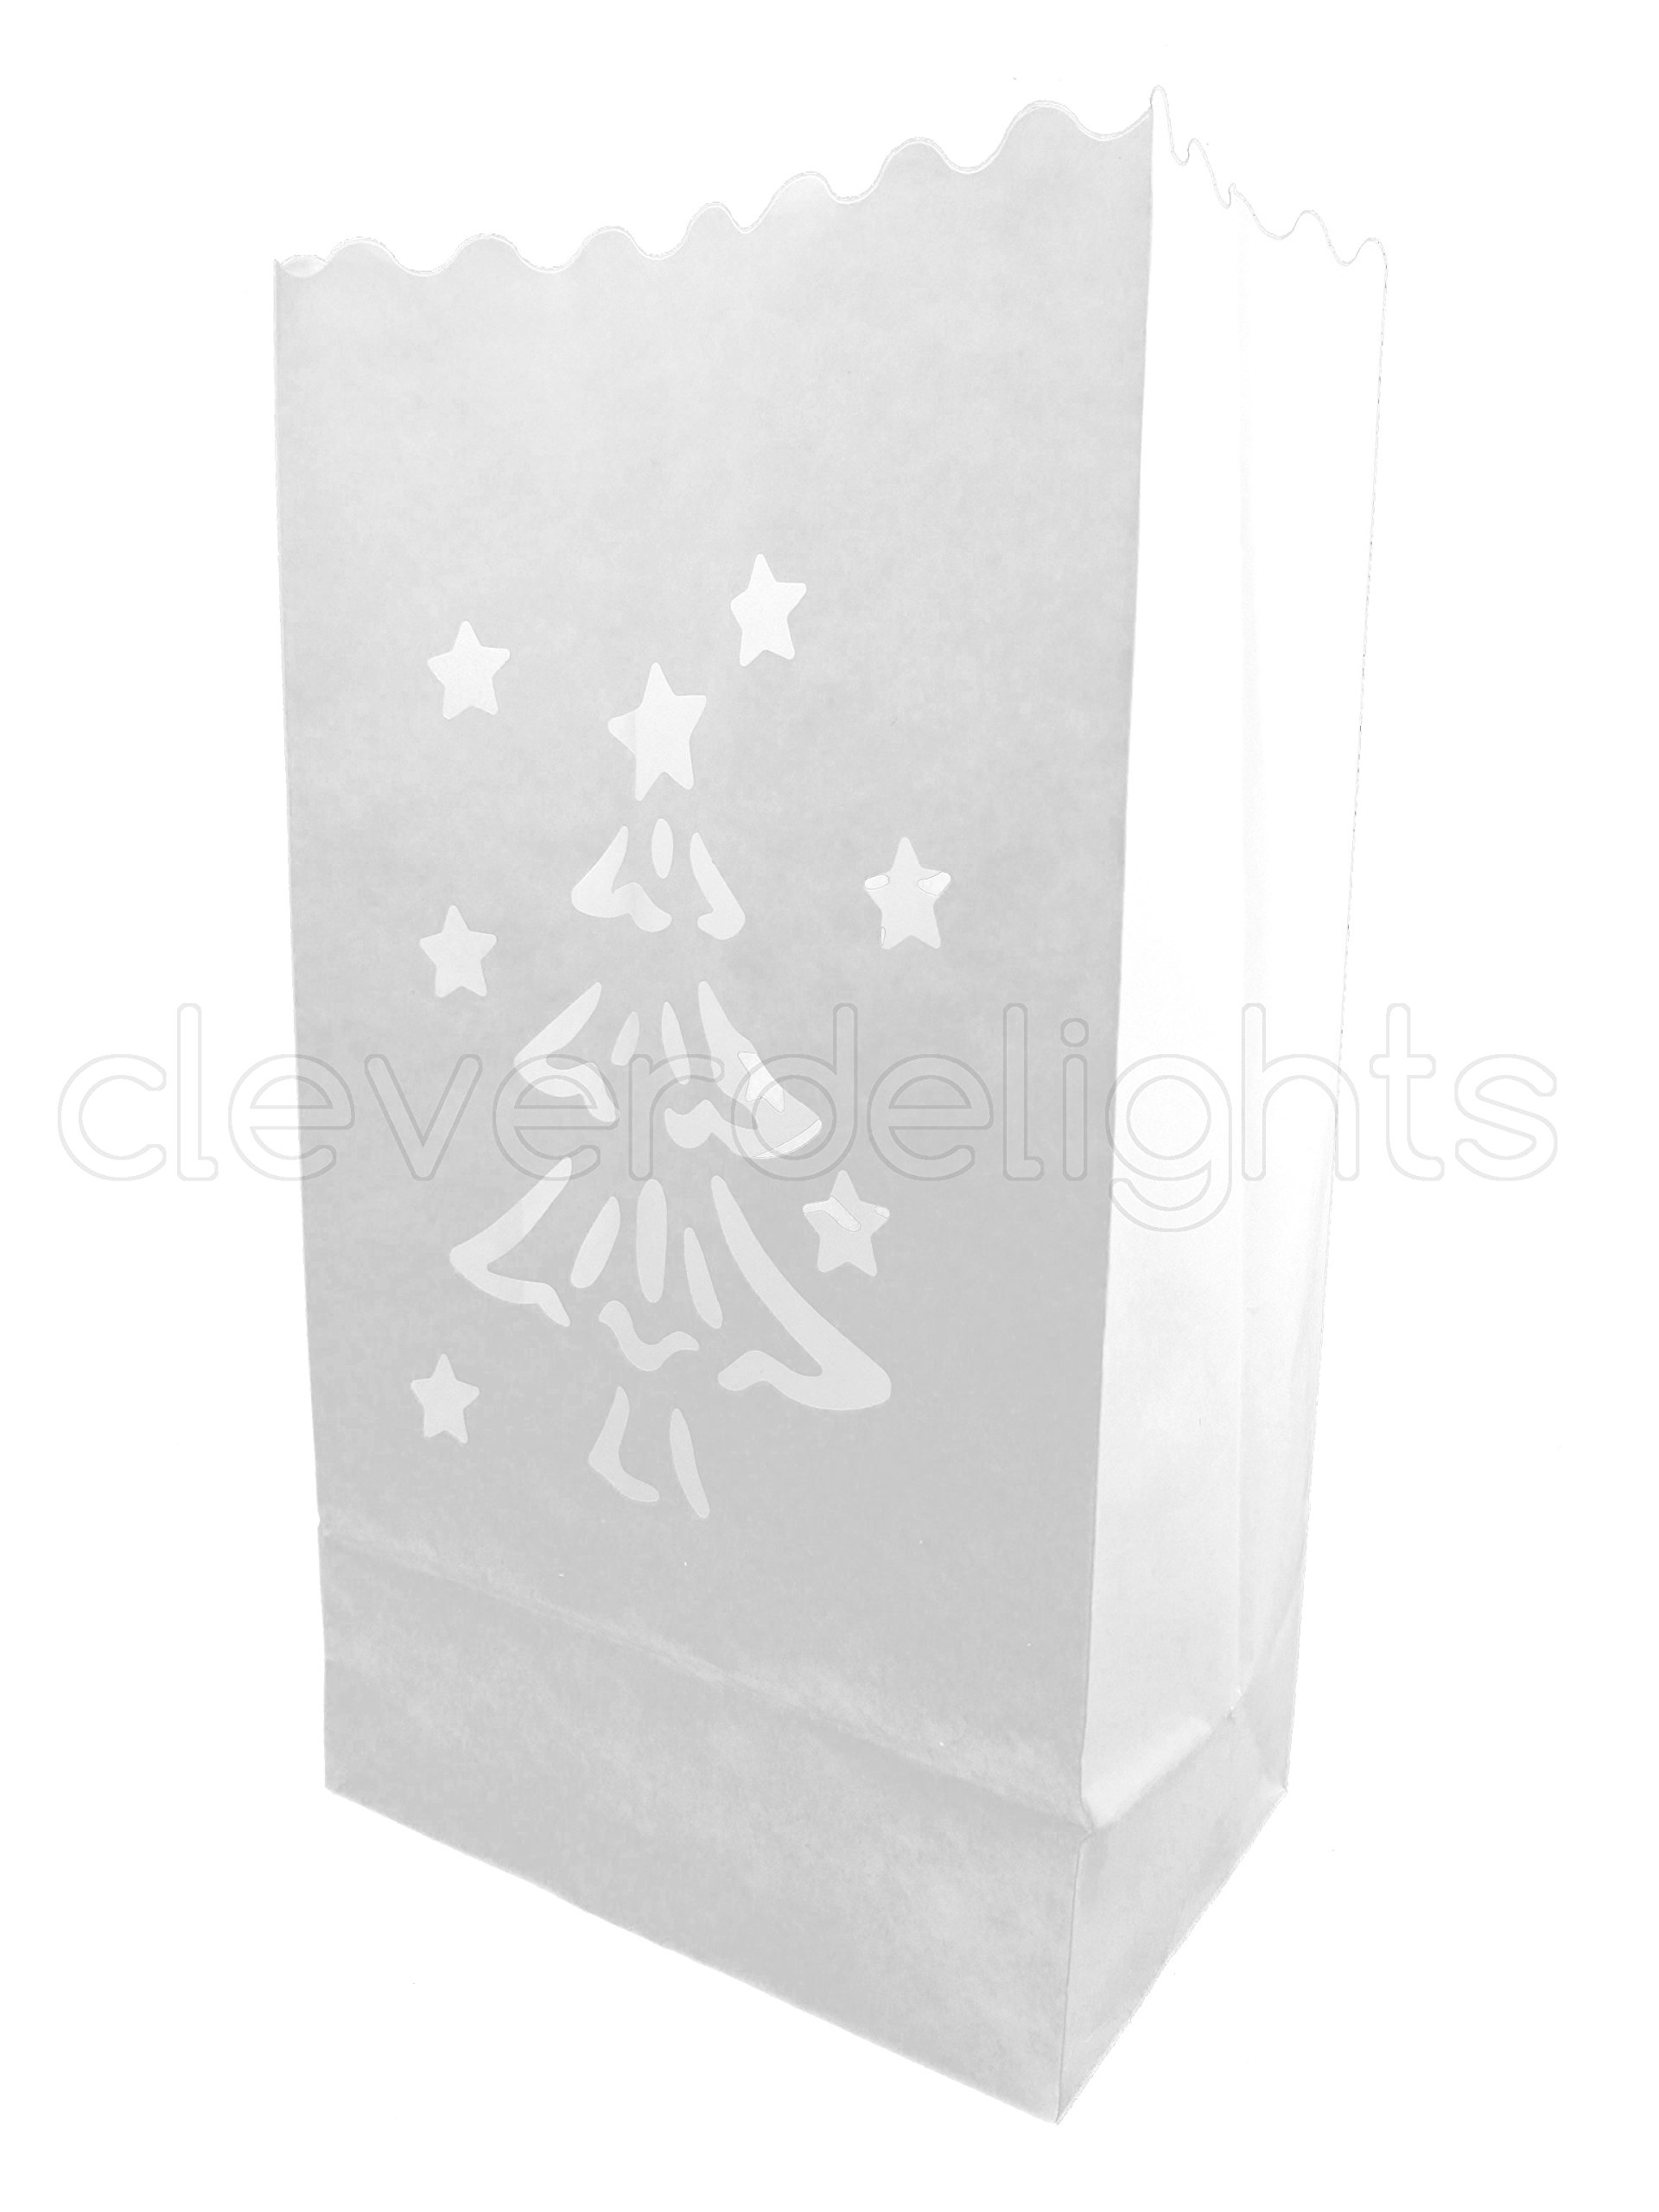 CleverDelights White Luminary Bags - 30 Count - Christmas Tree Design - Flame Resistant Paper - Christmas Holiday Outdoor Decorations - Party and Event Decor - Luminaria Candle Bag - Thirty Bags